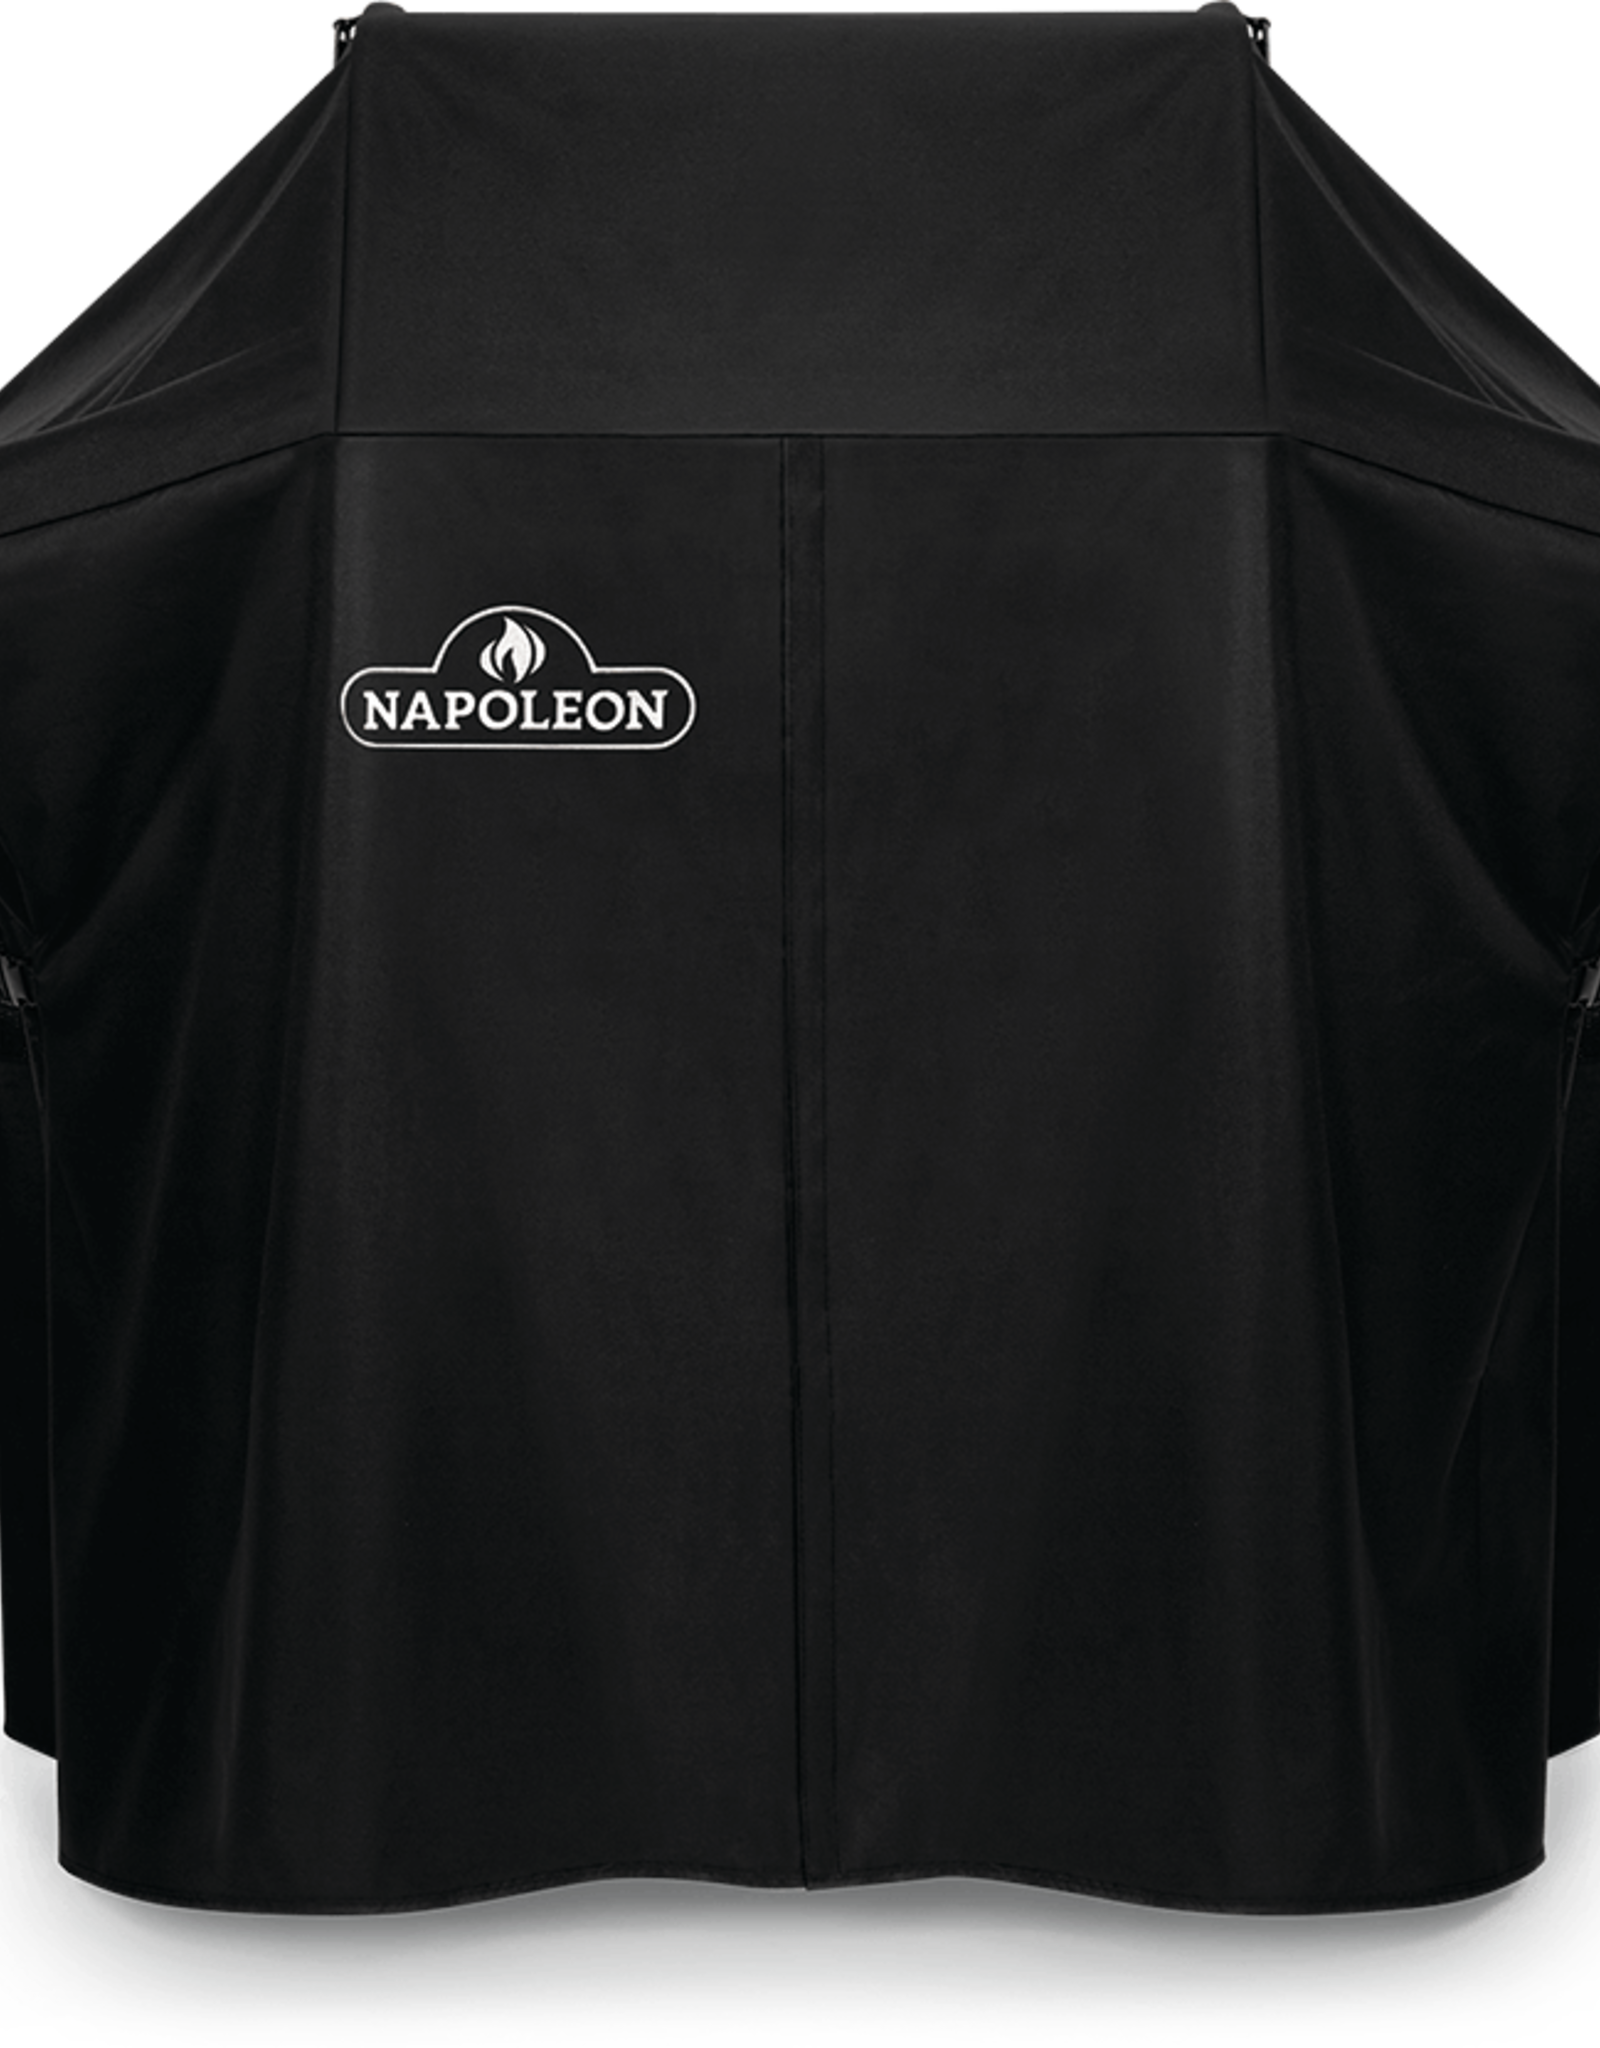 Napoleon Napoleon Rogue® 365 Series Grill Cover (Shelves Up) - 61365